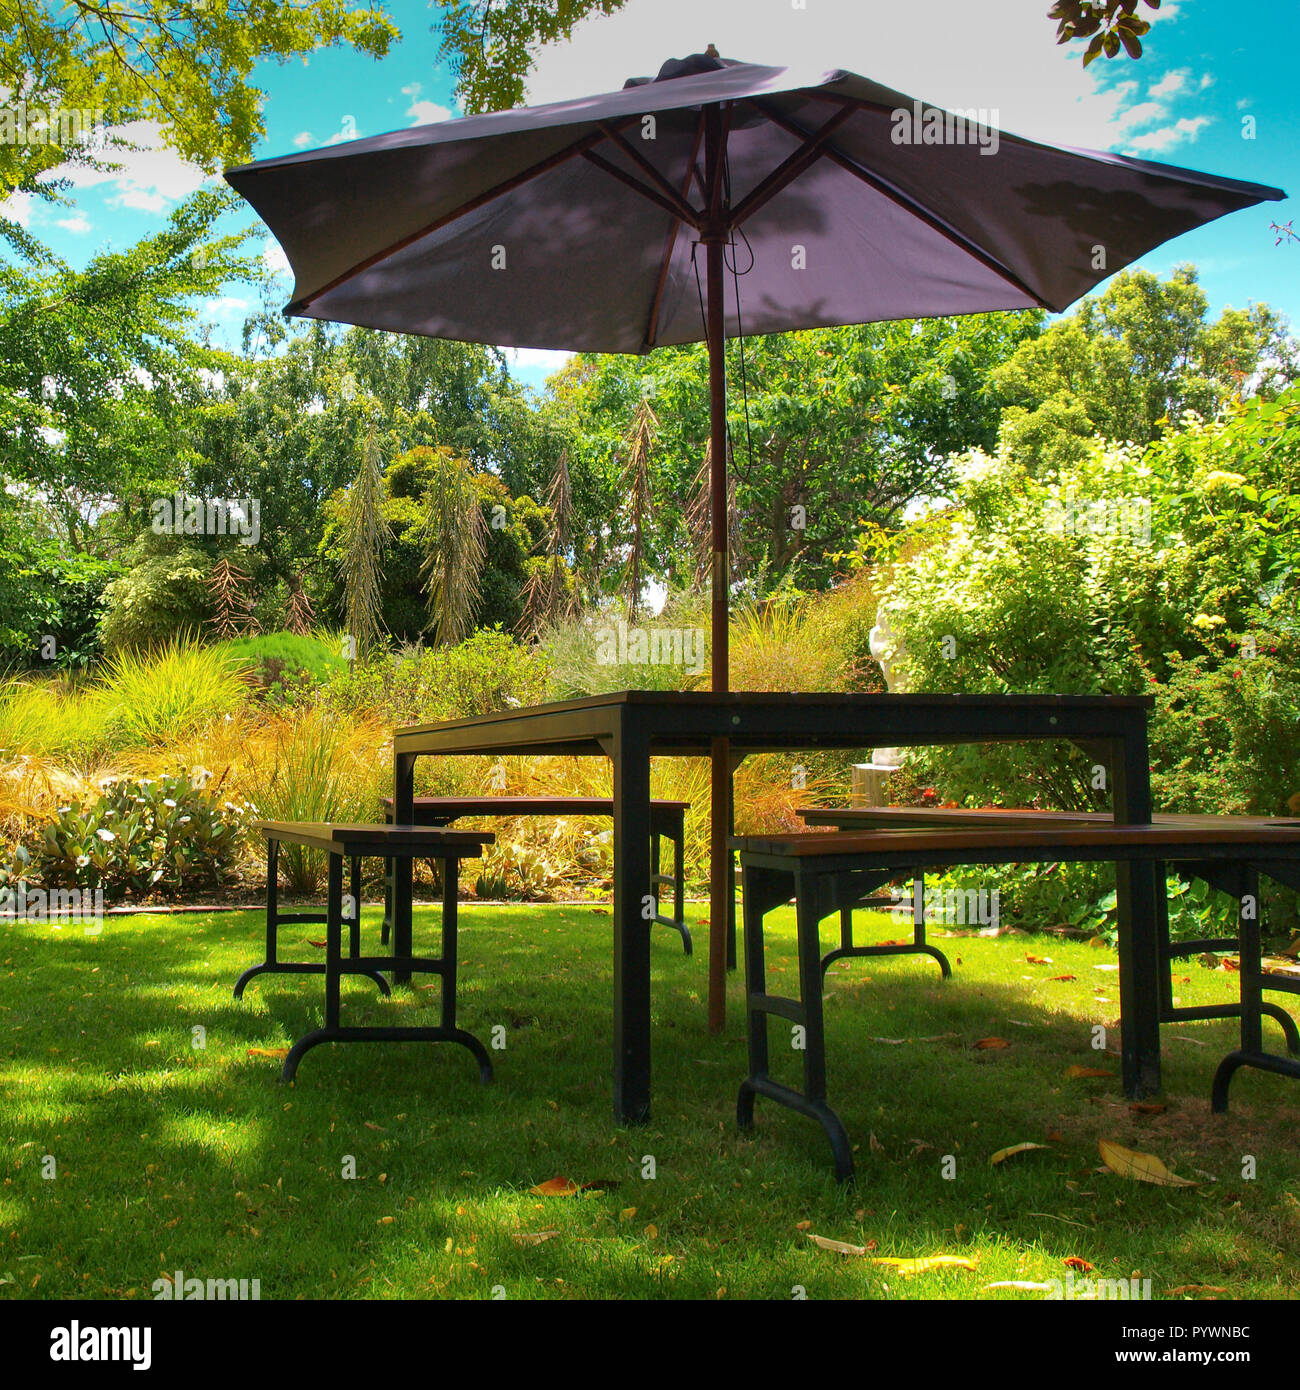 Dining Table With Chairs And Parasol In The Shade In A Lush Garden